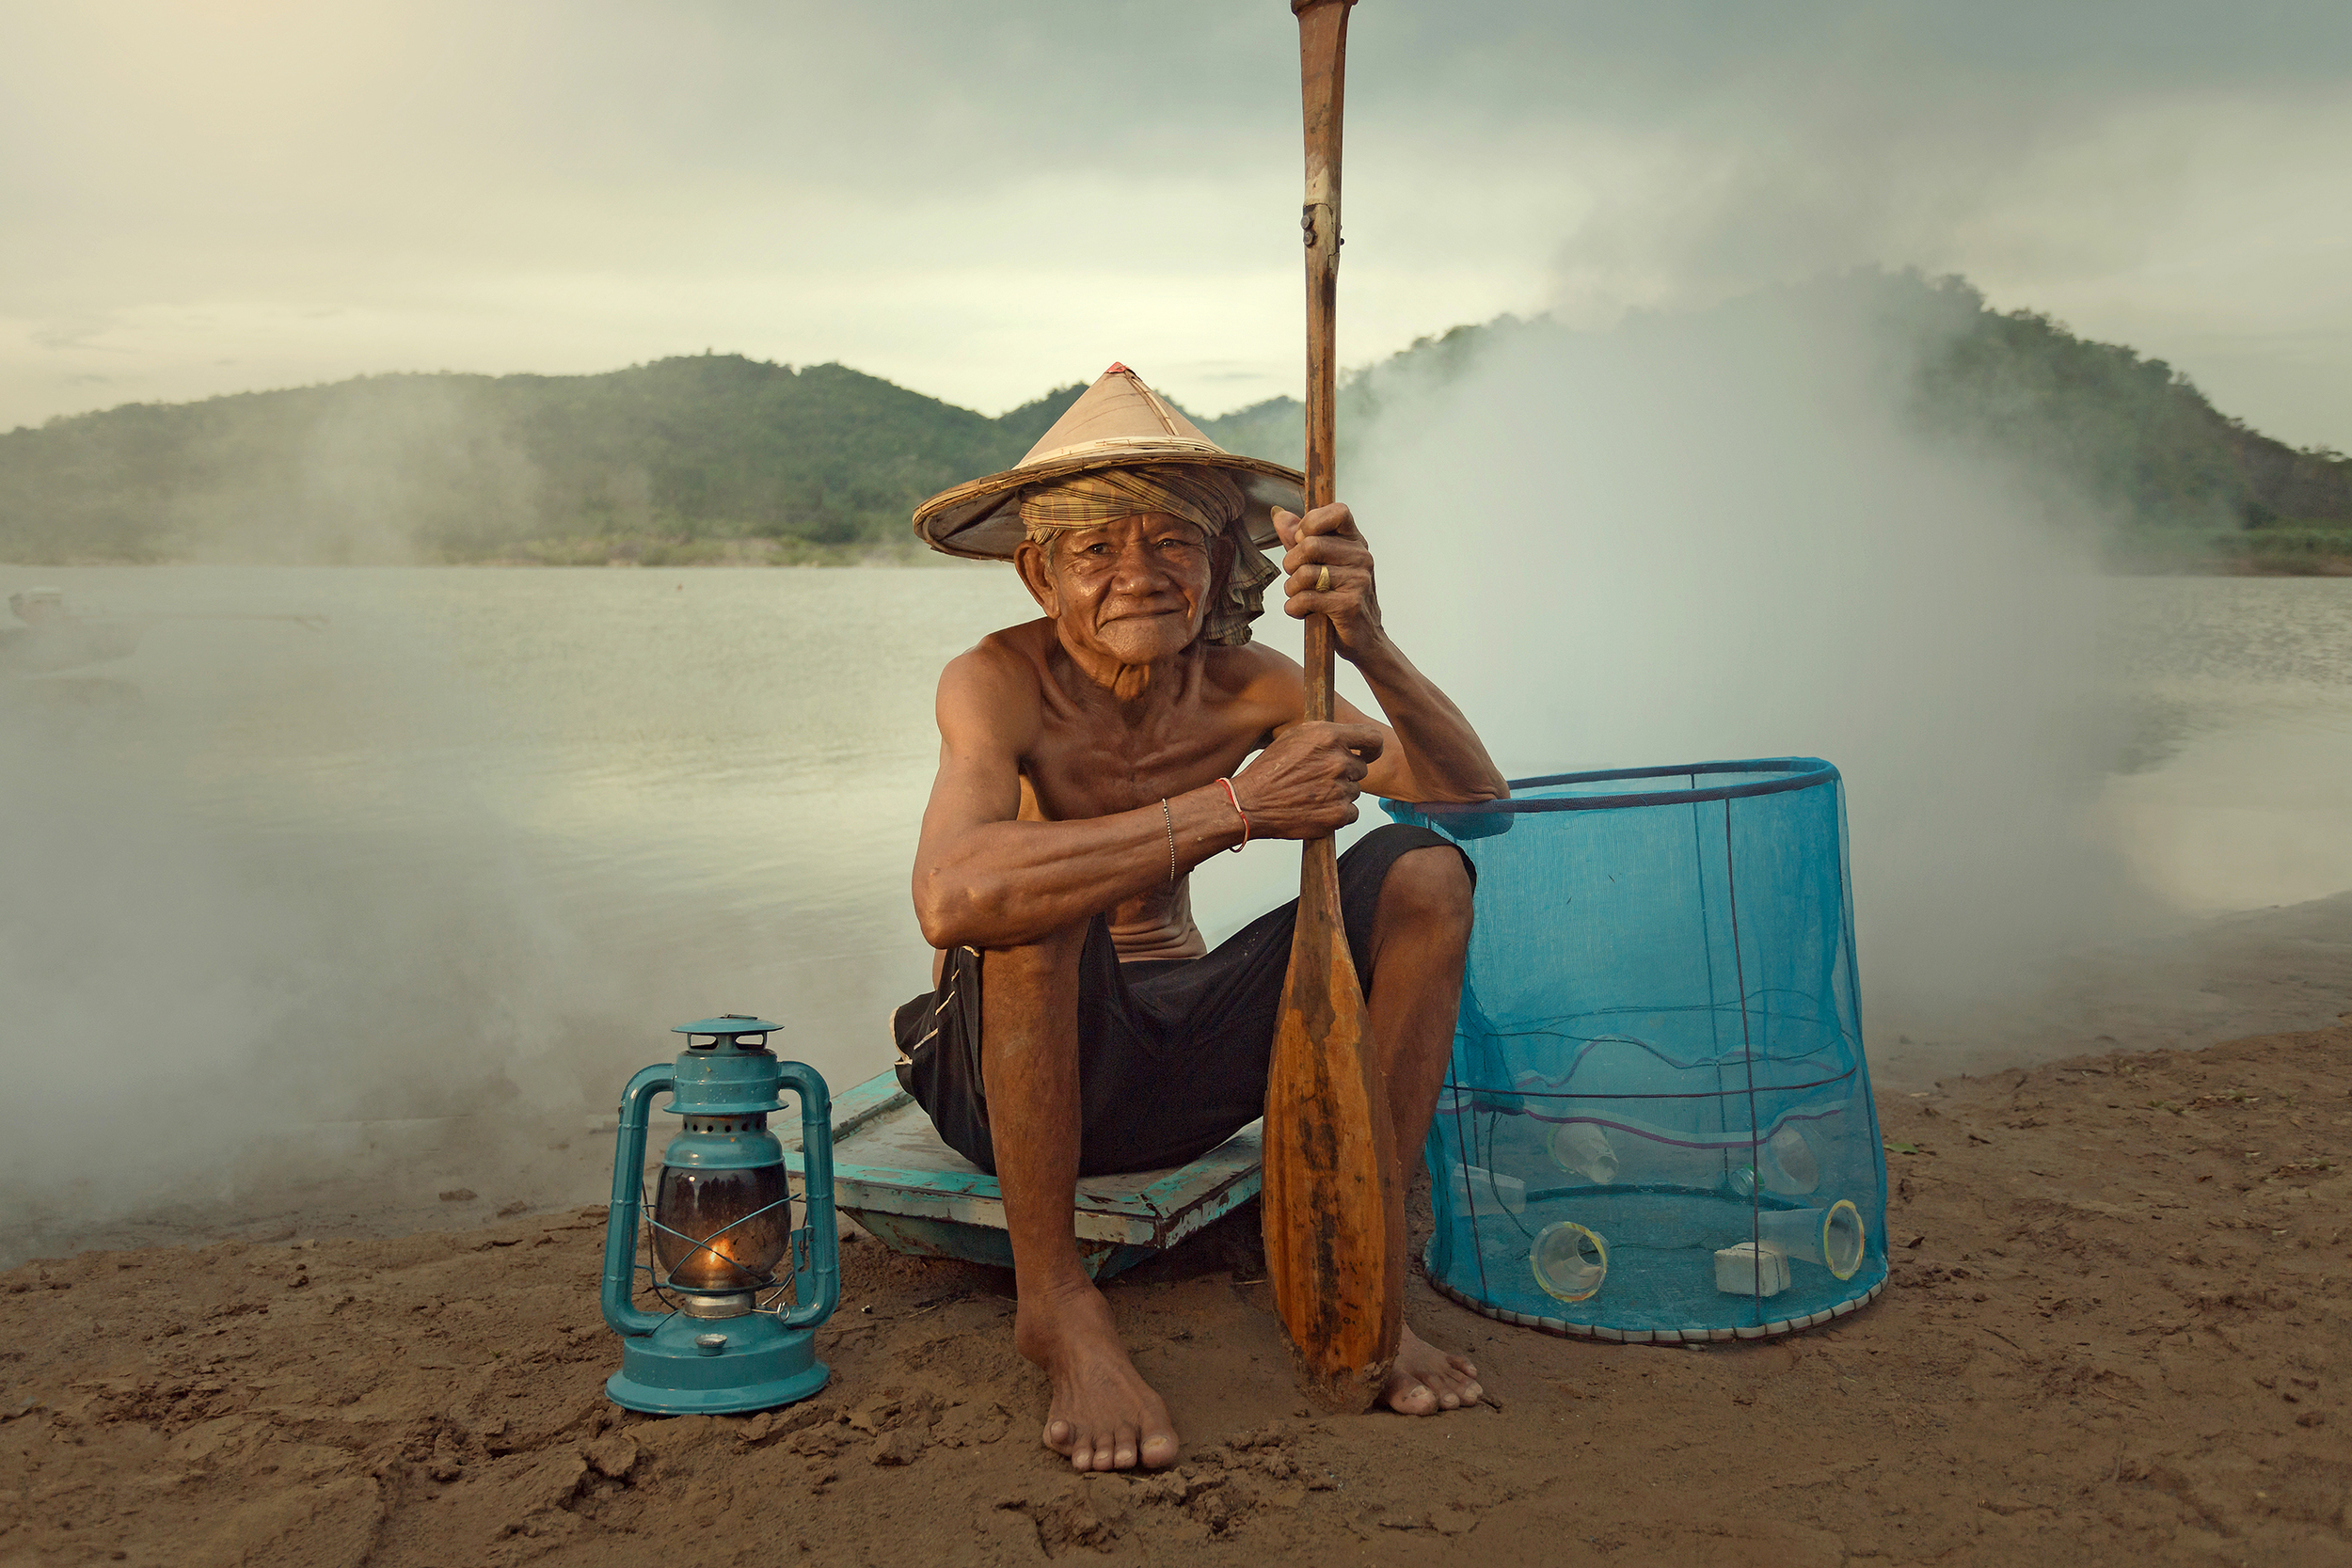 A local fisherman sitting on the ground